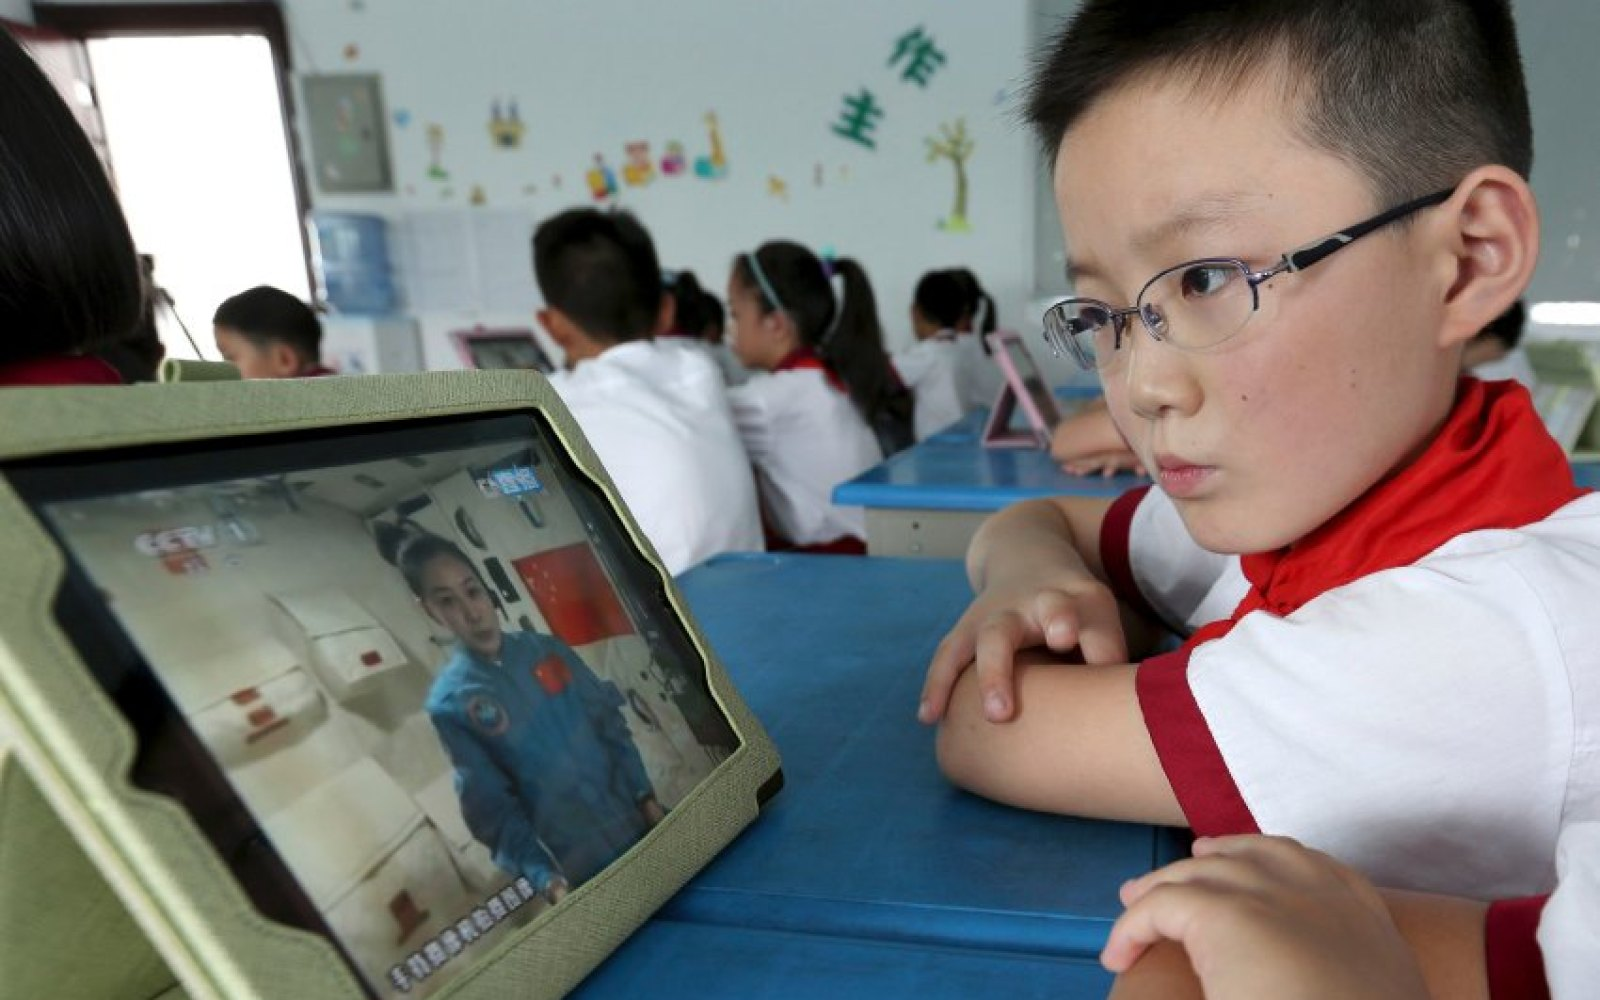 Apple planning iPad in education improvements, removing Apple ID requirement for apps & books